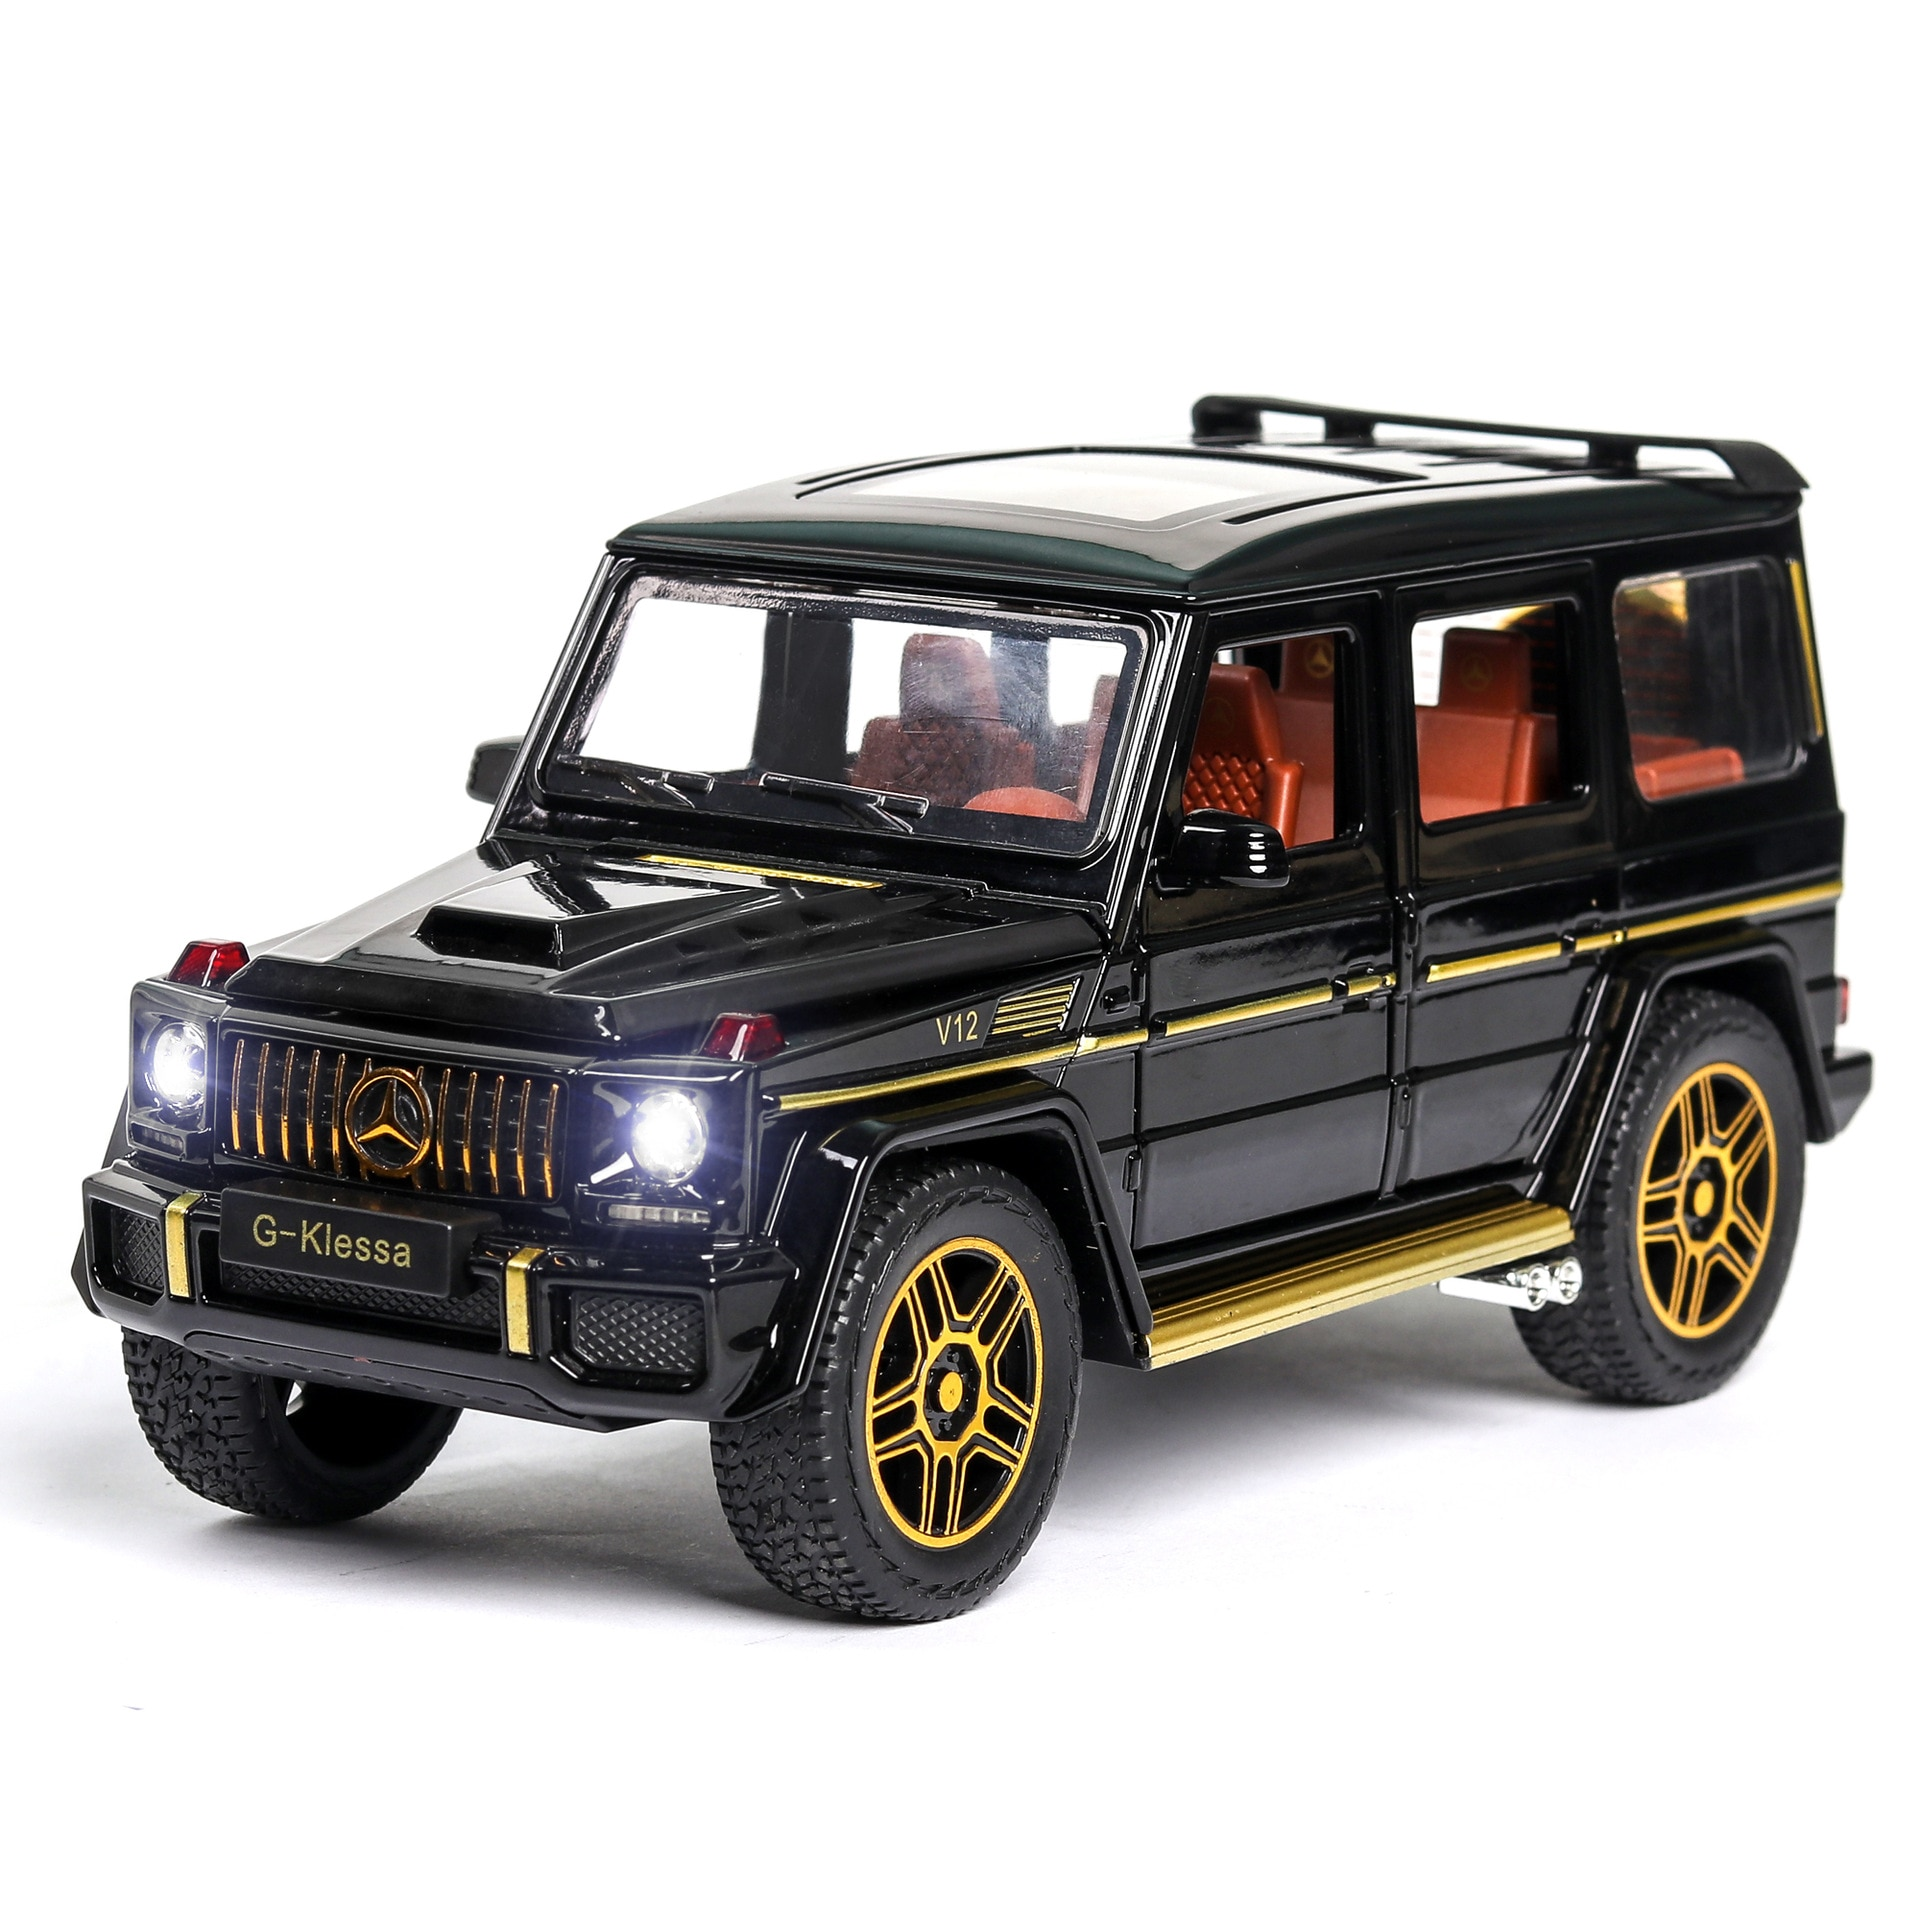 1:24 Toy Car Model Metal Wheels Simulation G65 Alloy Car Diecast Toy Vehicle Sound Light Pull Back Car Toys For Kids Gift 1 24 diecast alloy car model metal car toy wheels toy vehicle simulation sound light pull back car collection kids toy car gift